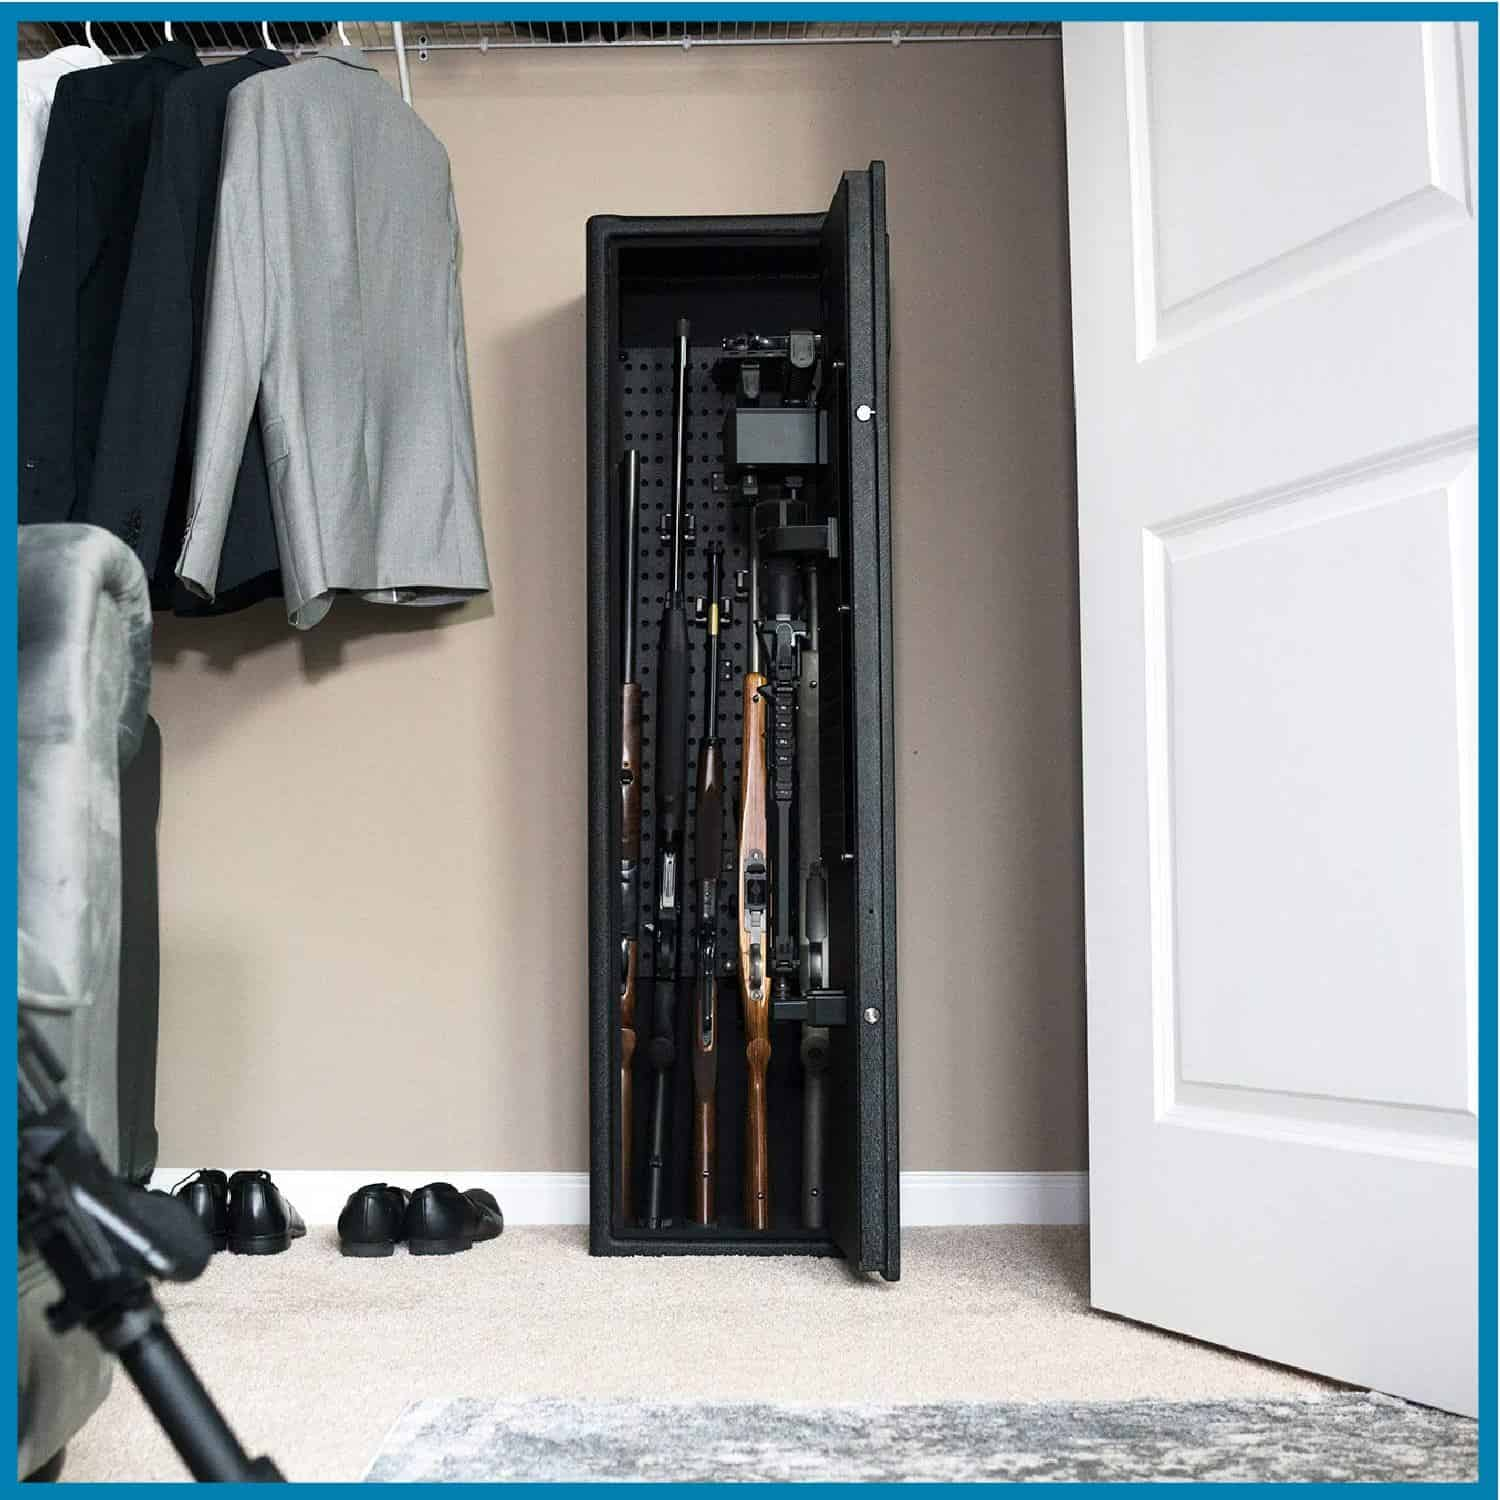 Why Choose a Biometric Gun Safe Rather Than a Traditional Safe?